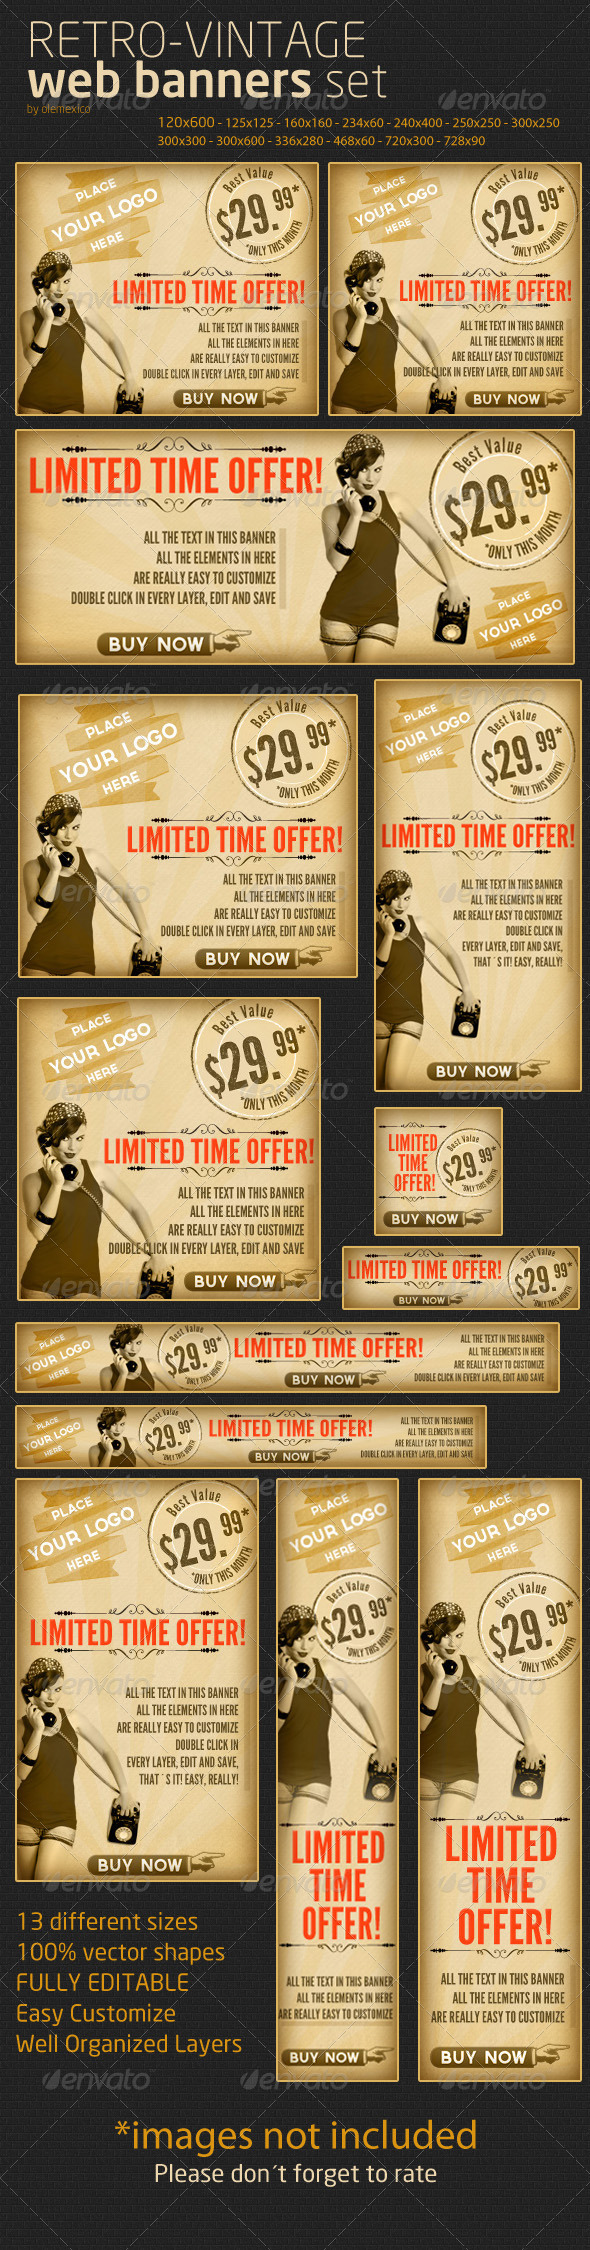 Retro-Vintage Web Banner Set - Banners & Ads Web Elements